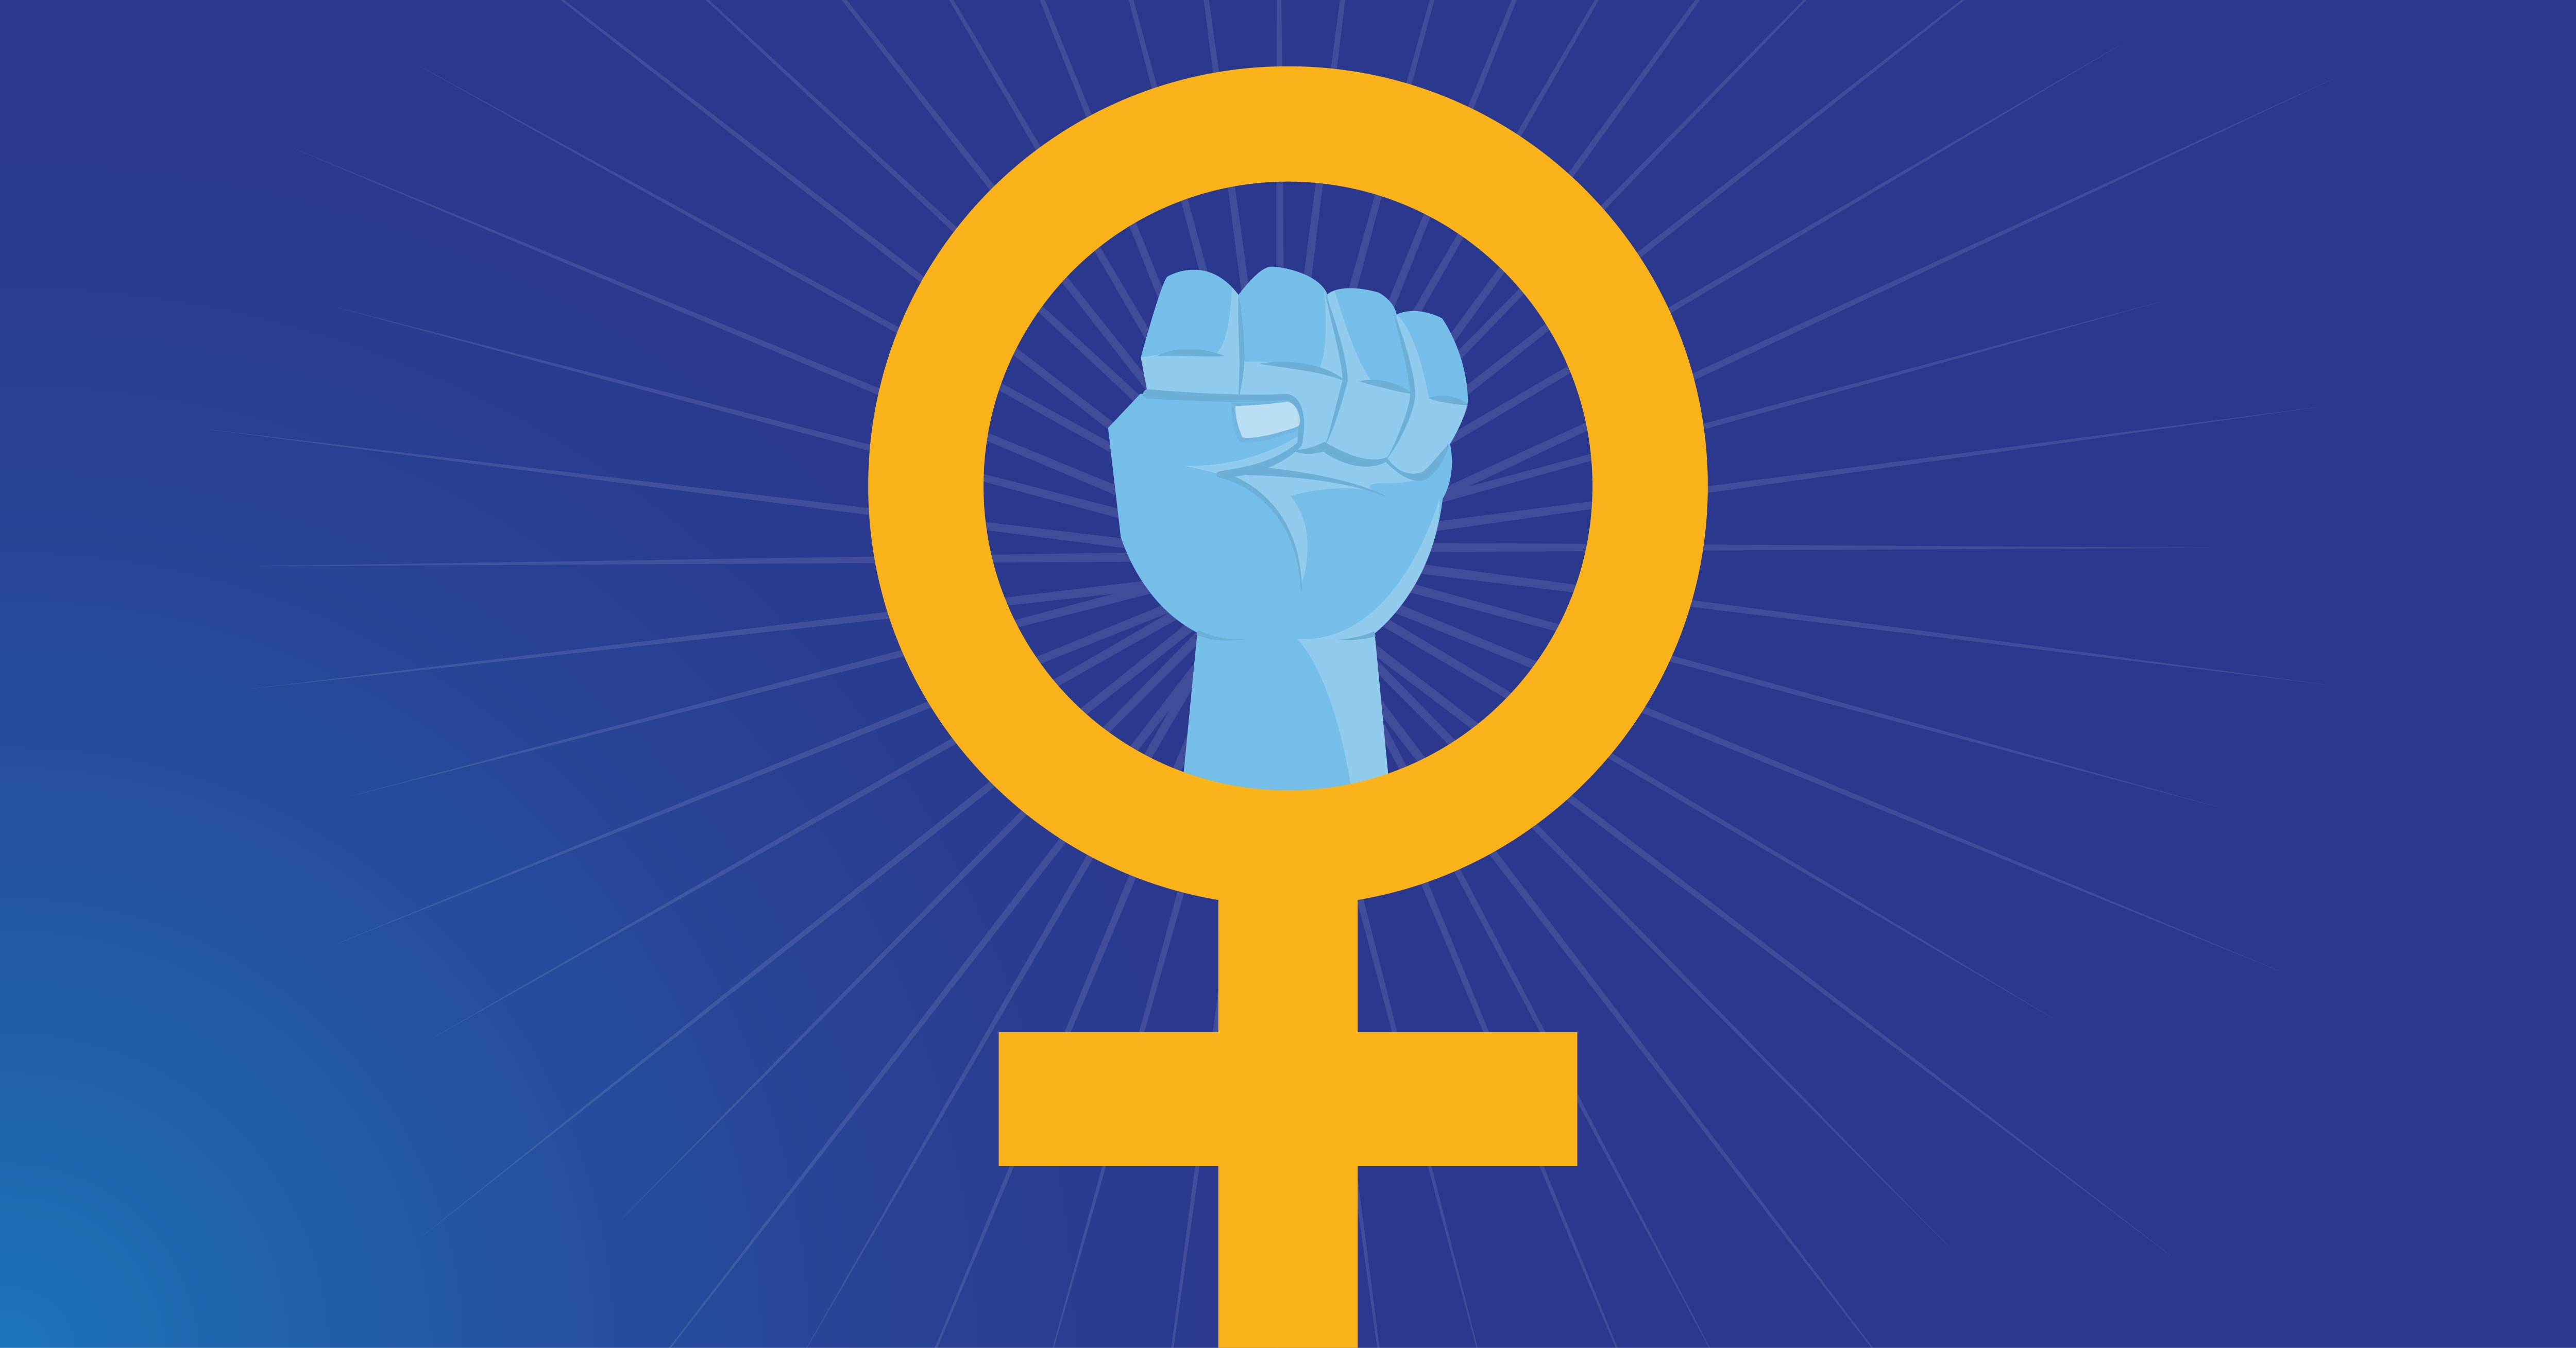 A symbol for the women's movement: A raised fist embedded within a Venus symbol.